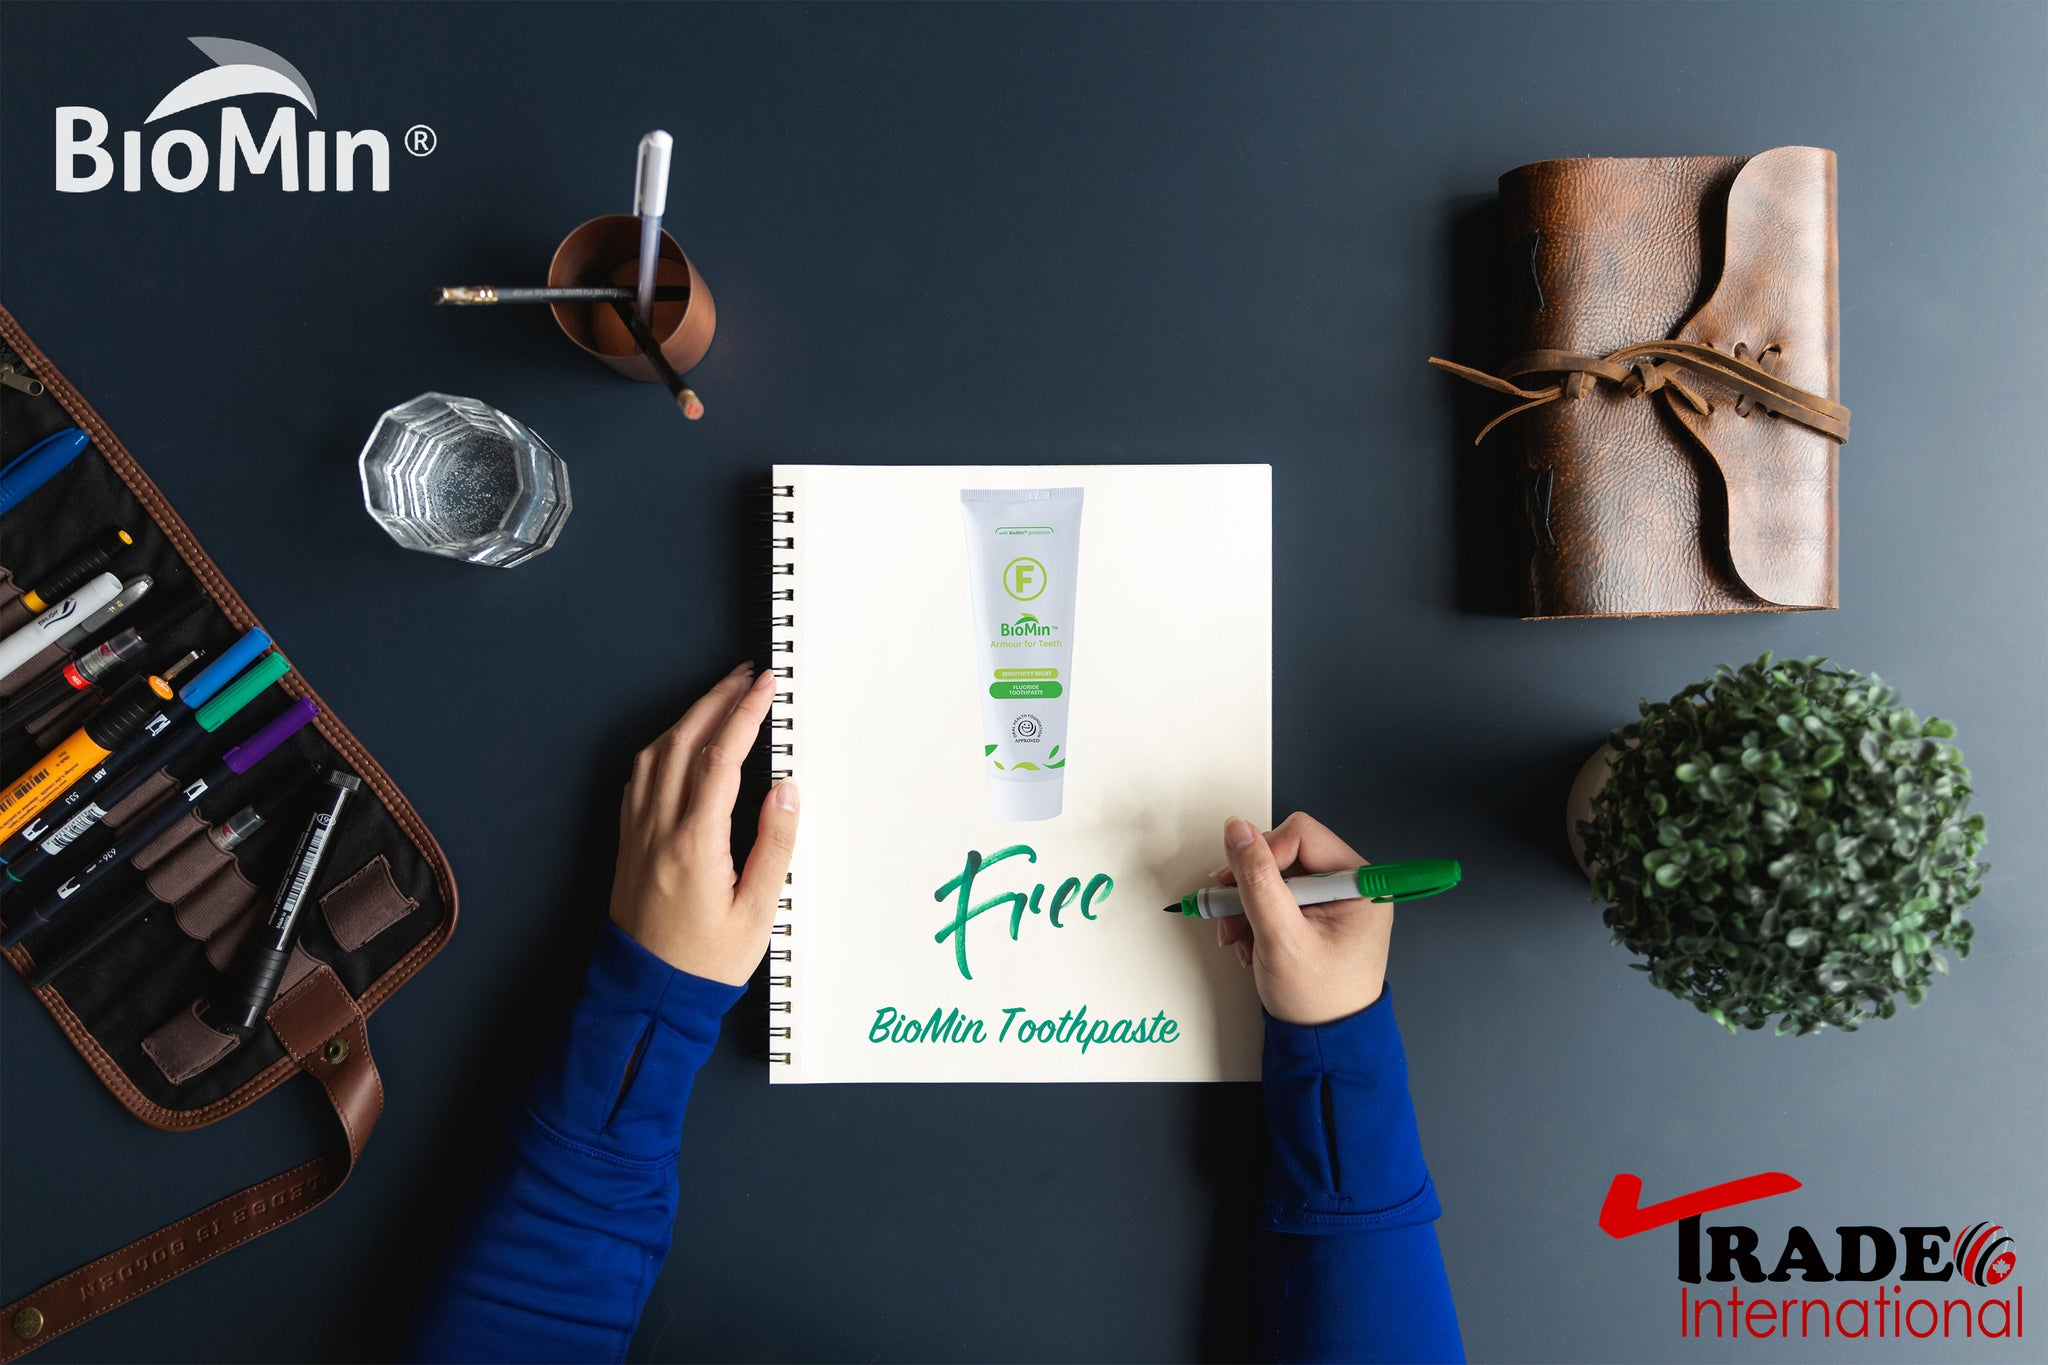 Free BioMin toothpaste for Returning Customers